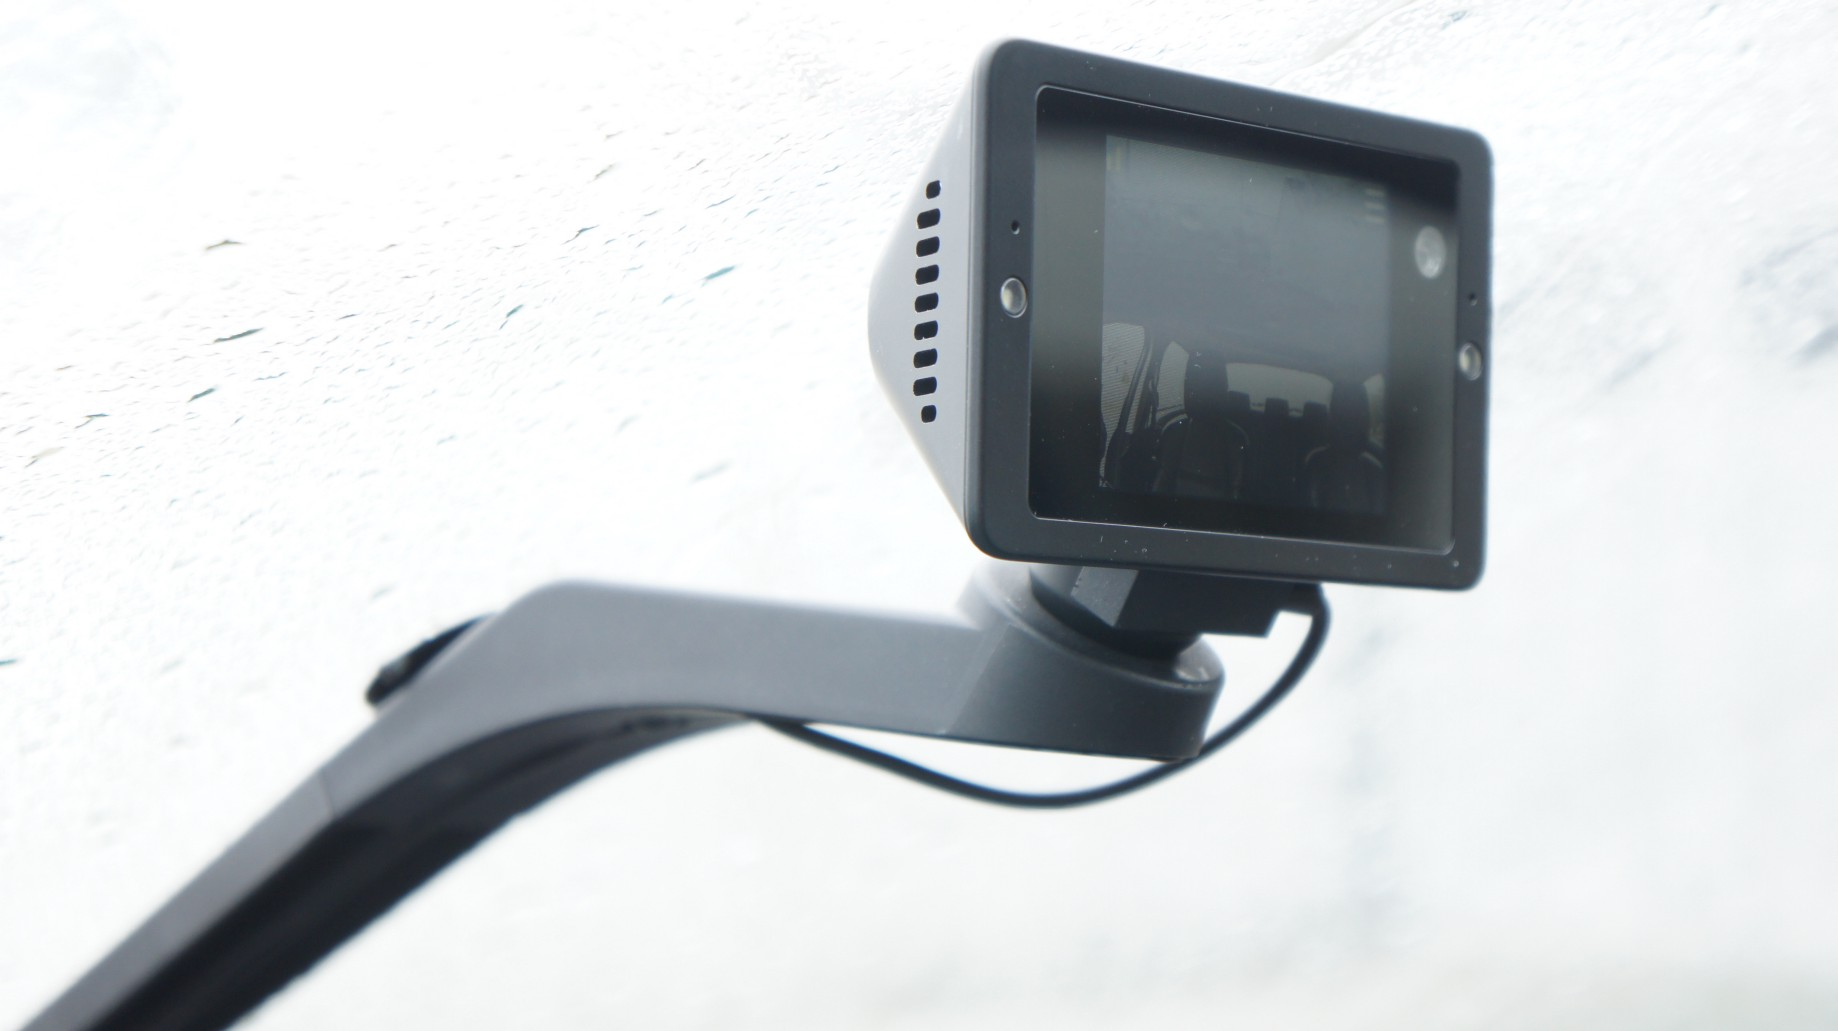 I let Owl dash cam watch a hopeless place…my car - Lance Ulanoff